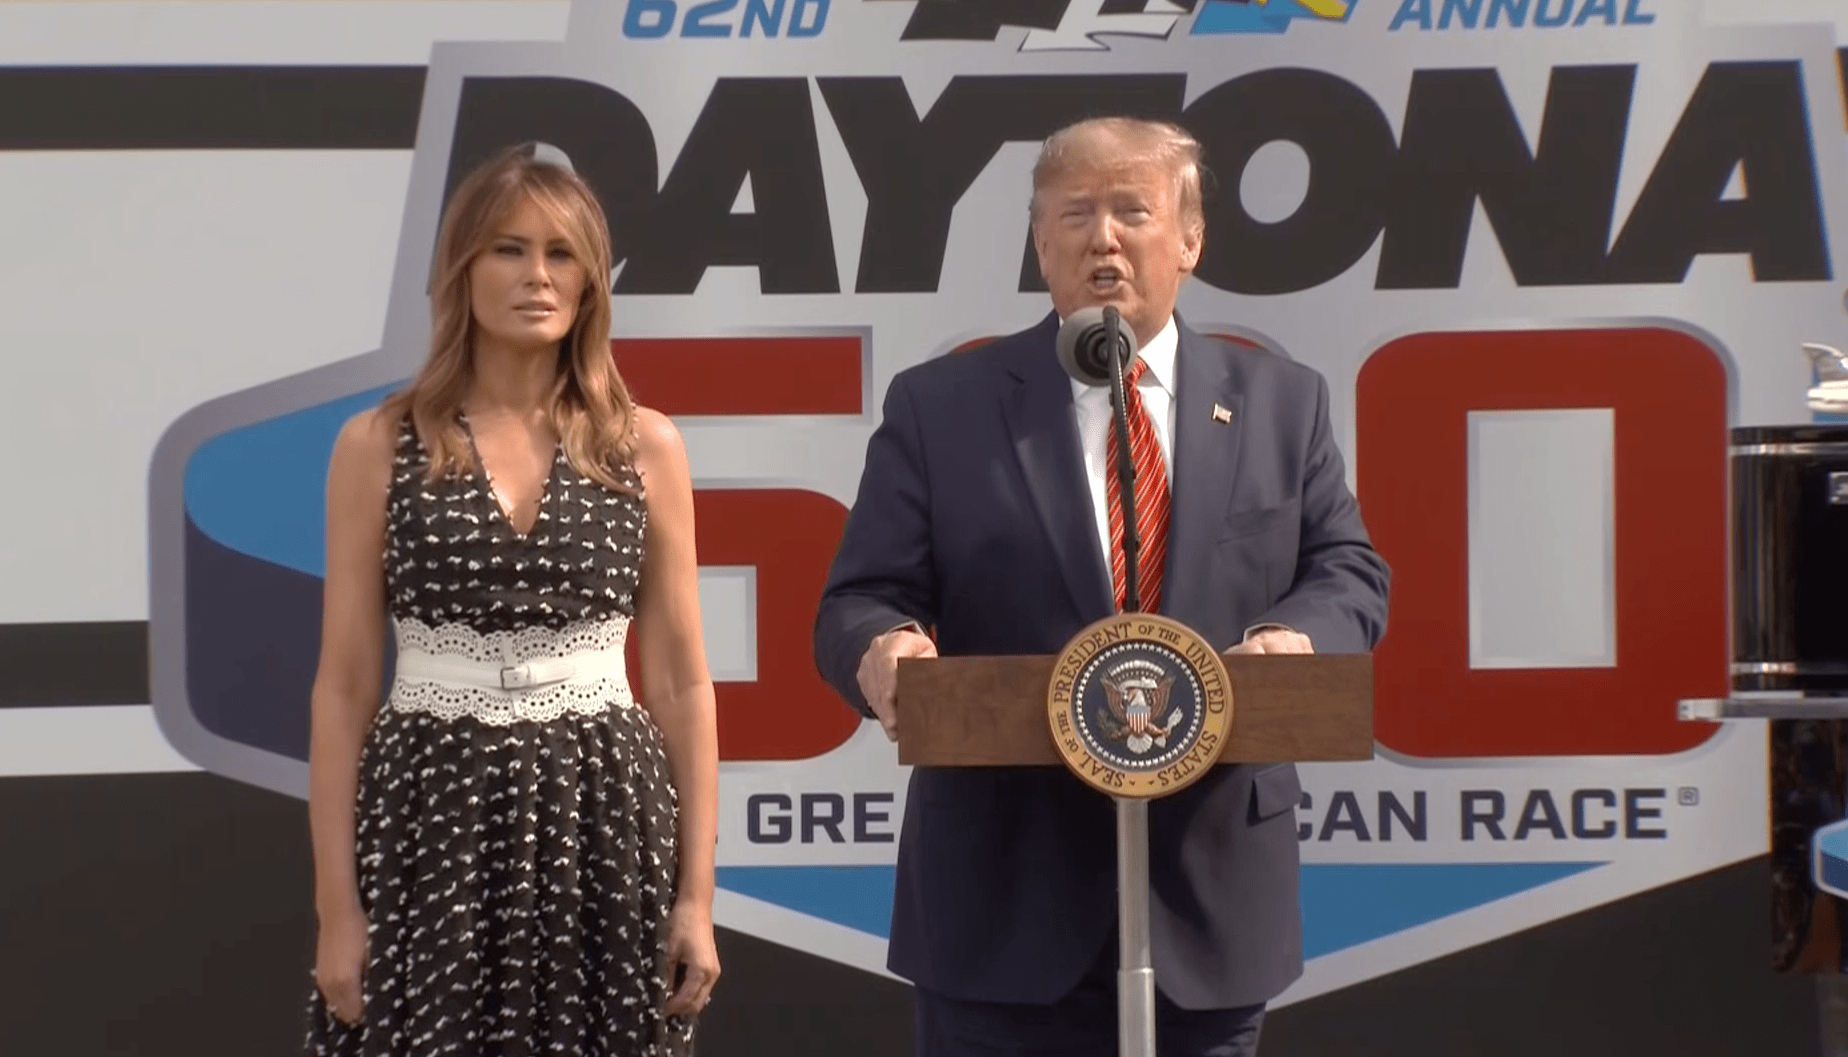 Donald Trump, standing beside Melania Trump, addresses the crowd at Daytona 500 in Florida on Feb. 16, 2020. (Credit: CNN)